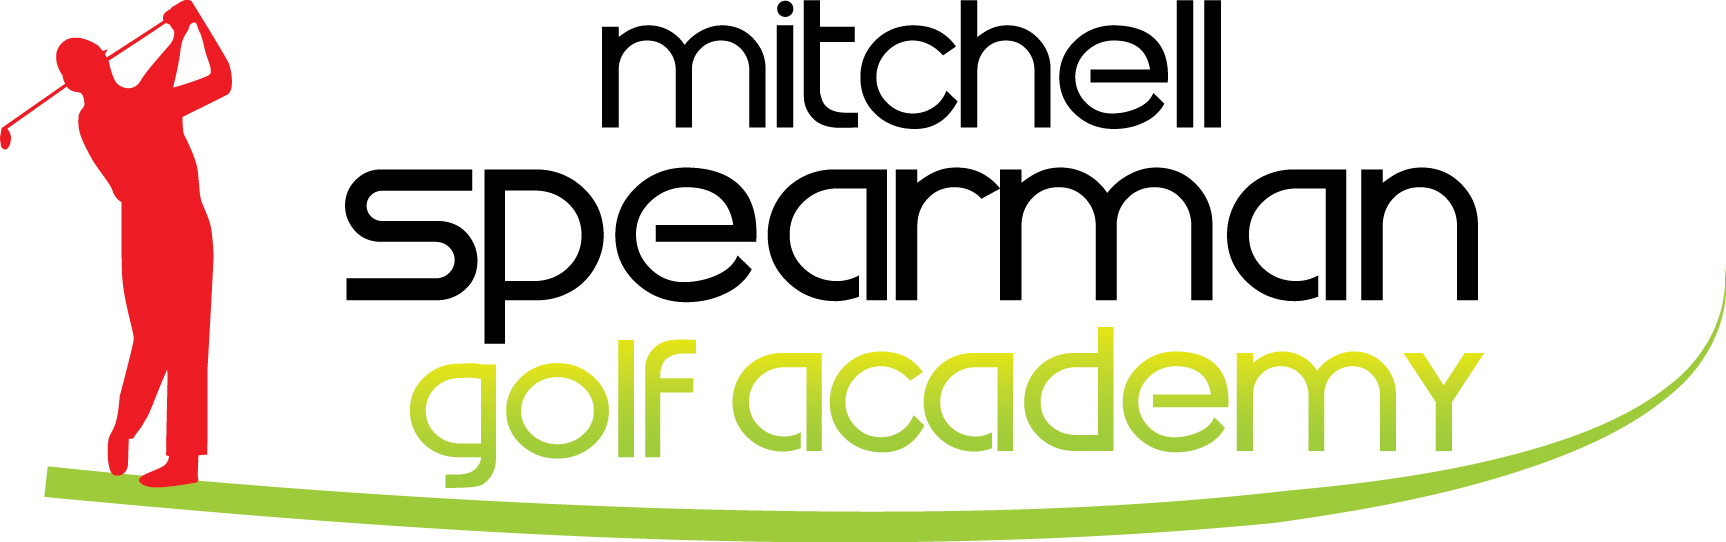 Mitchell Spearman Golf Academy